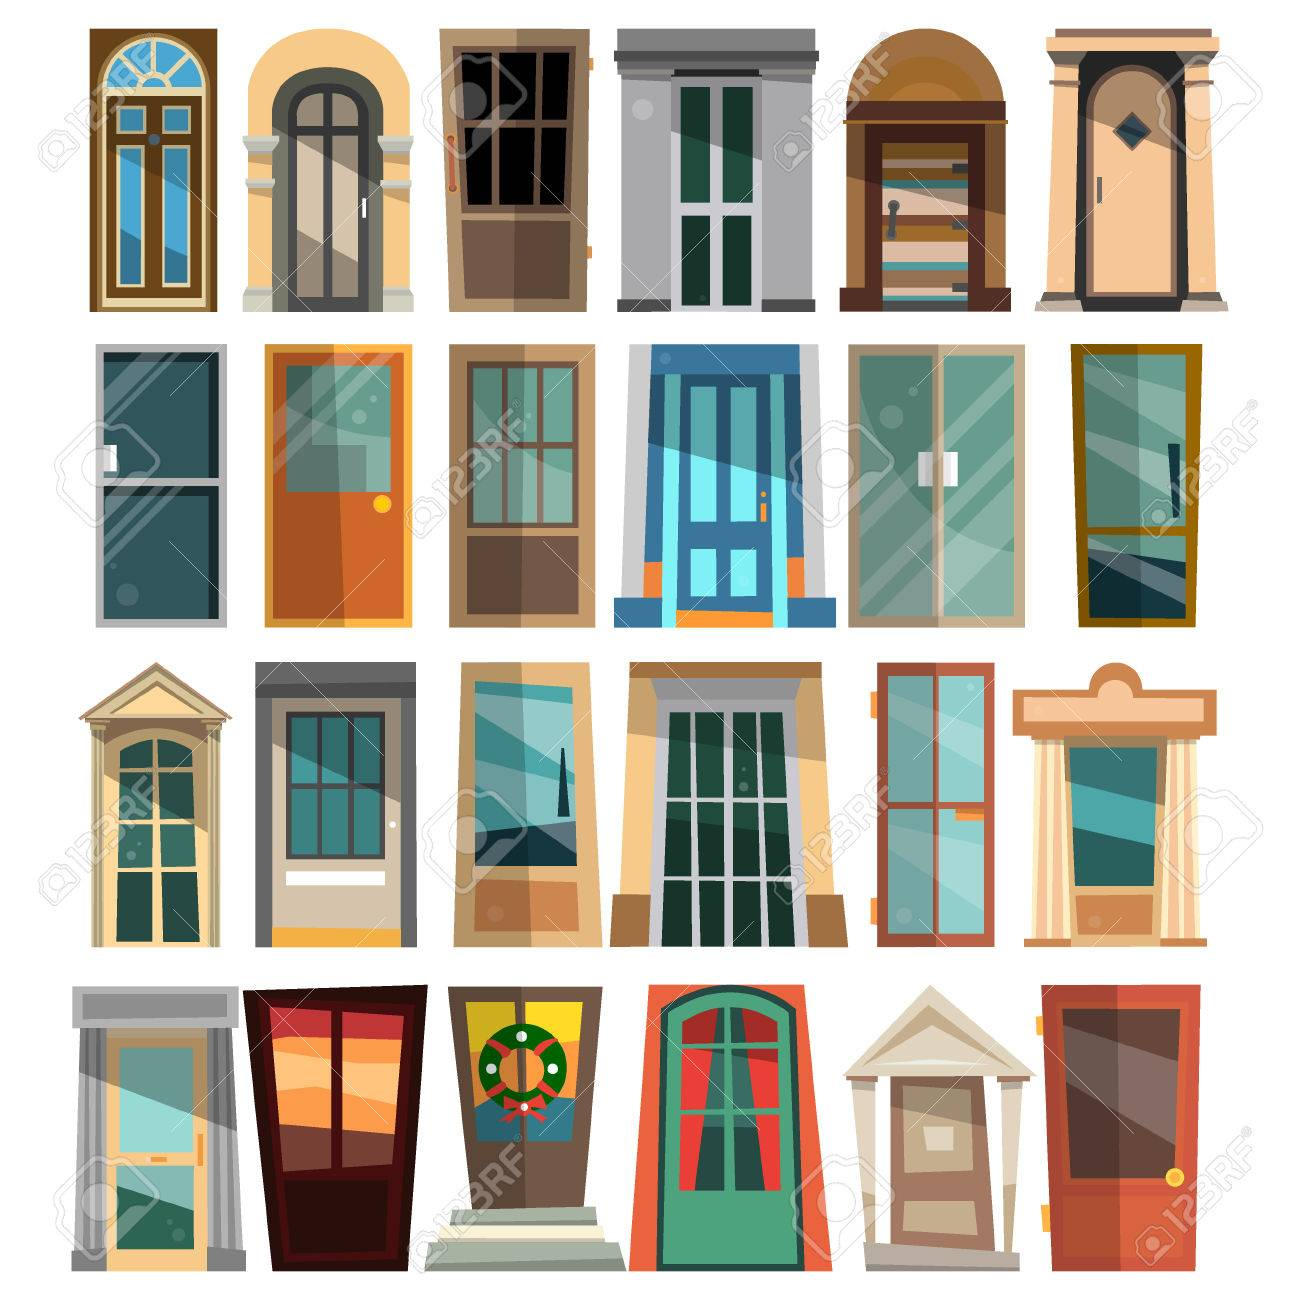 Set of beautiful front doors in flat style for homes and buildings vector illustration isolated